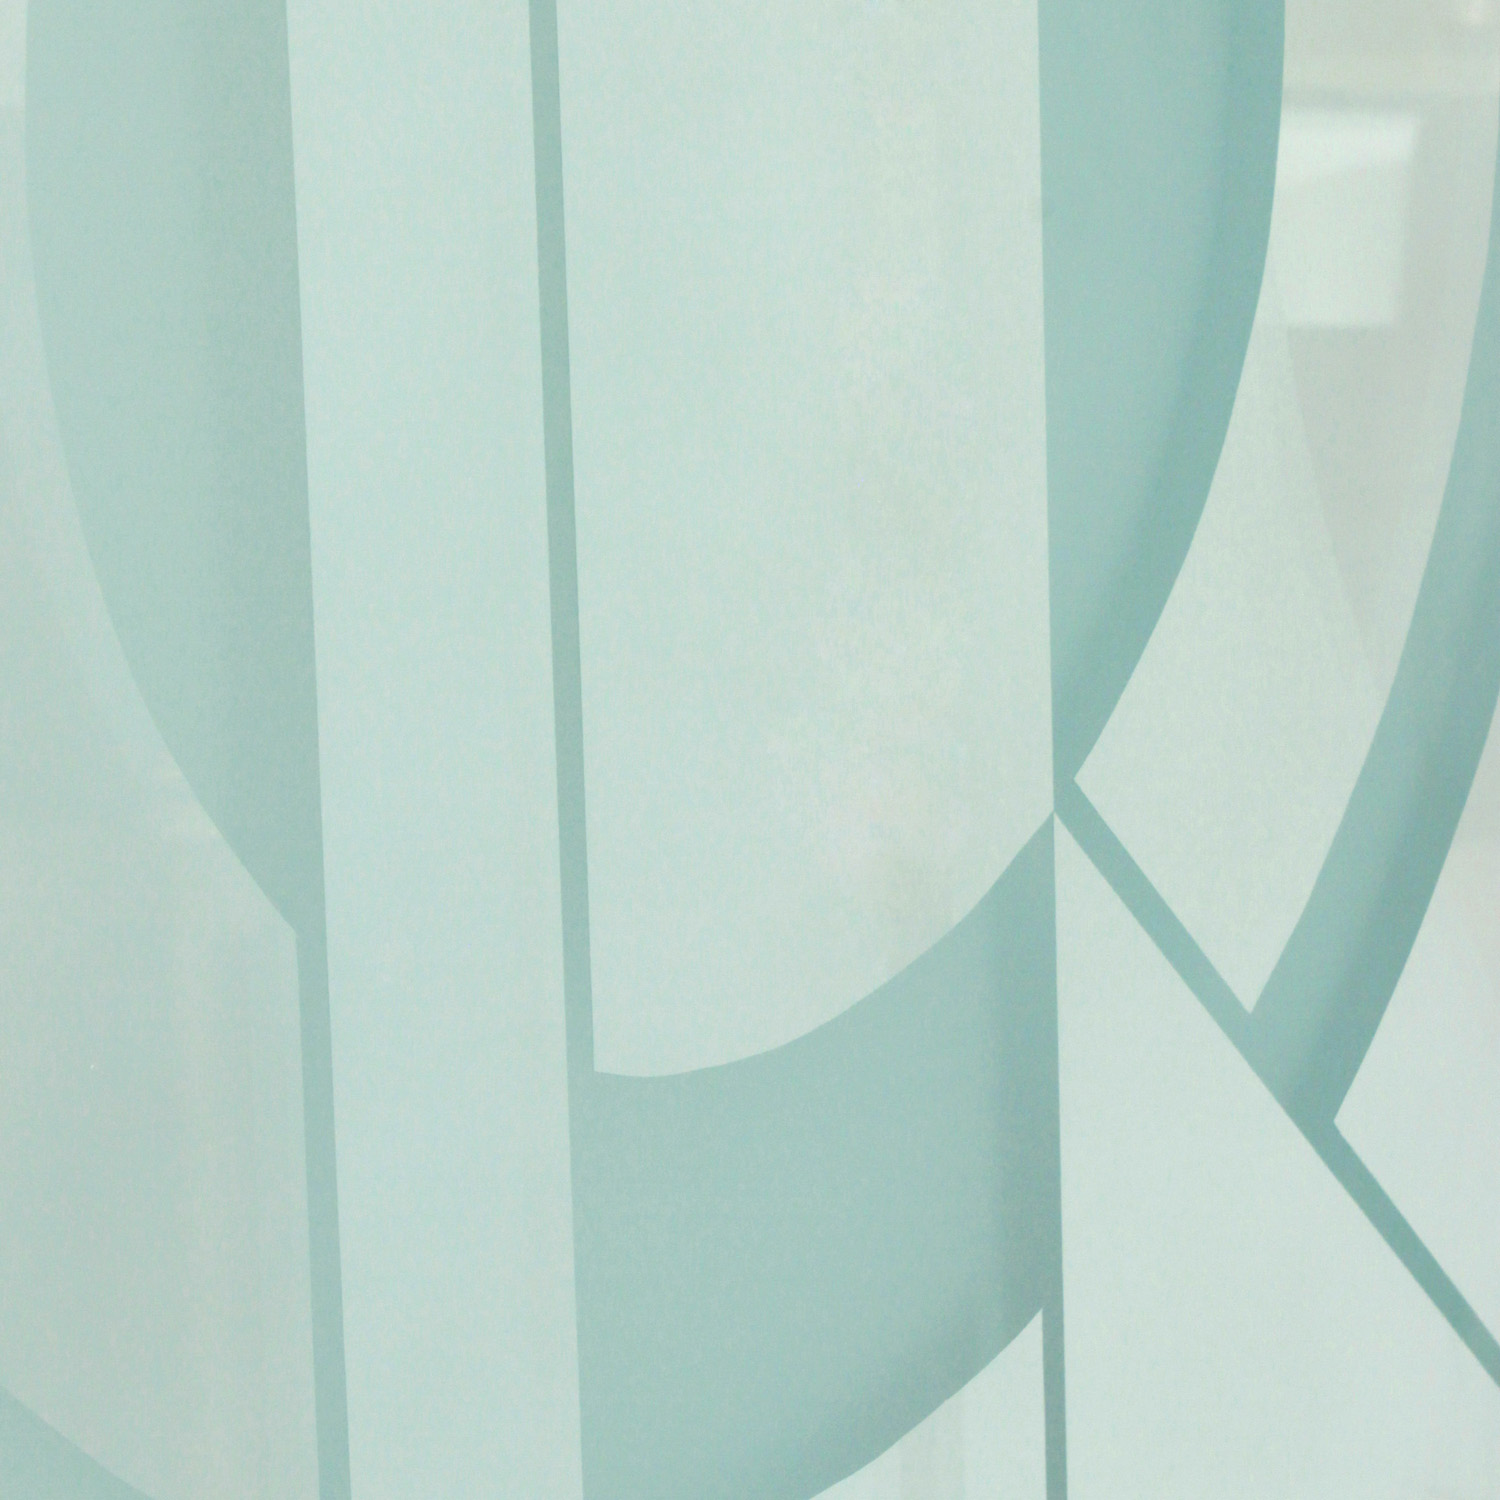 Shultz 85 etched 3 panel glass screen14 detail hires.jpg